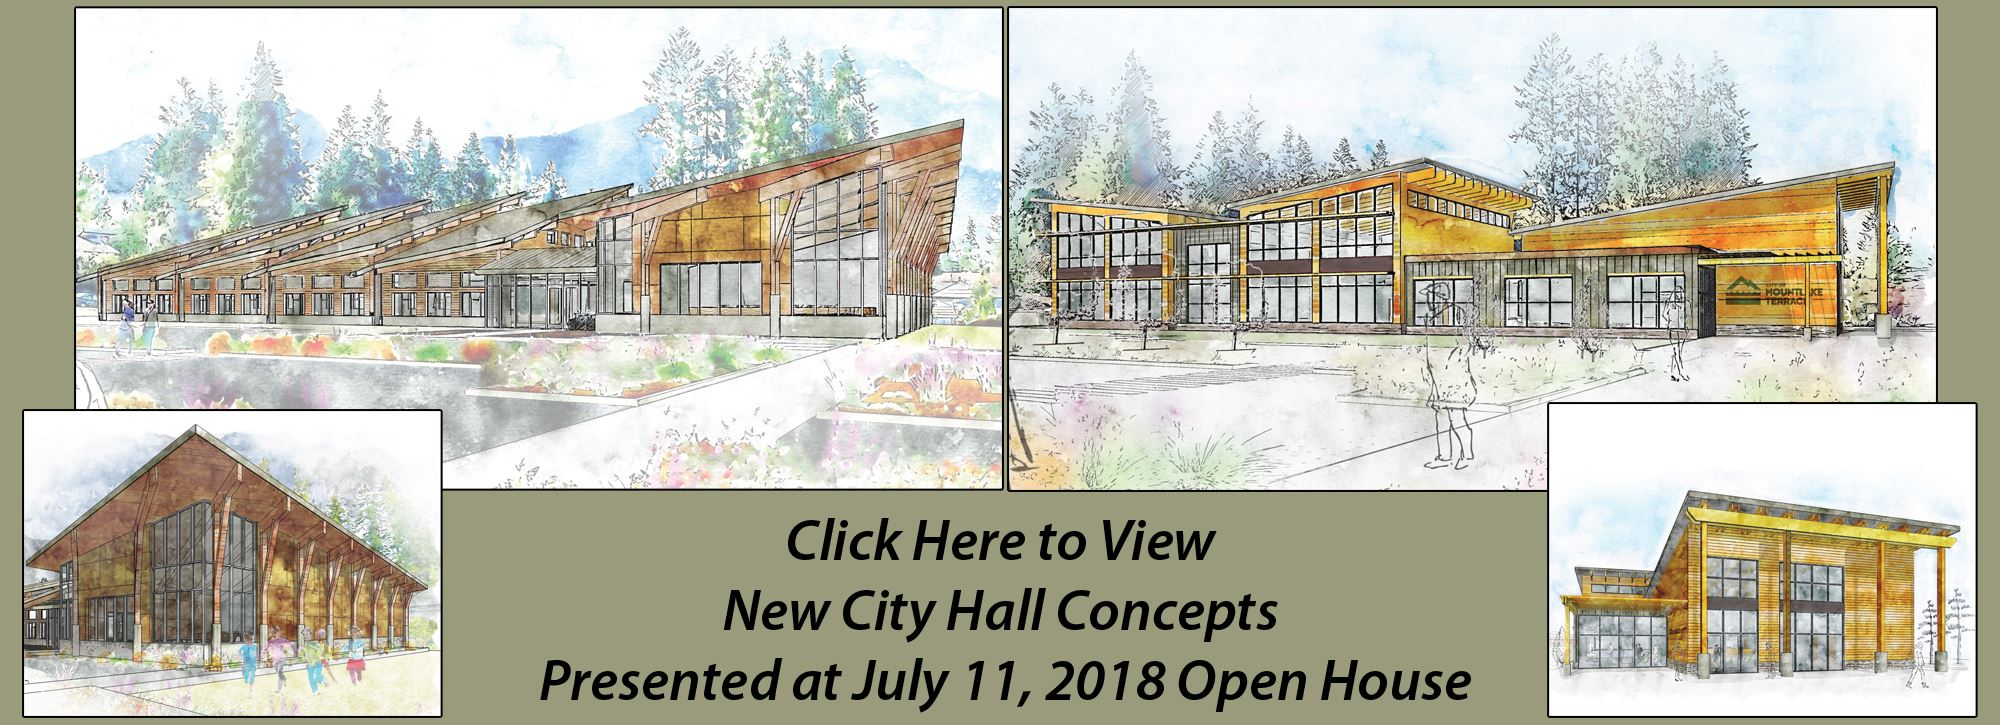 City Hall Concepts, From July 11, 2018 Open House